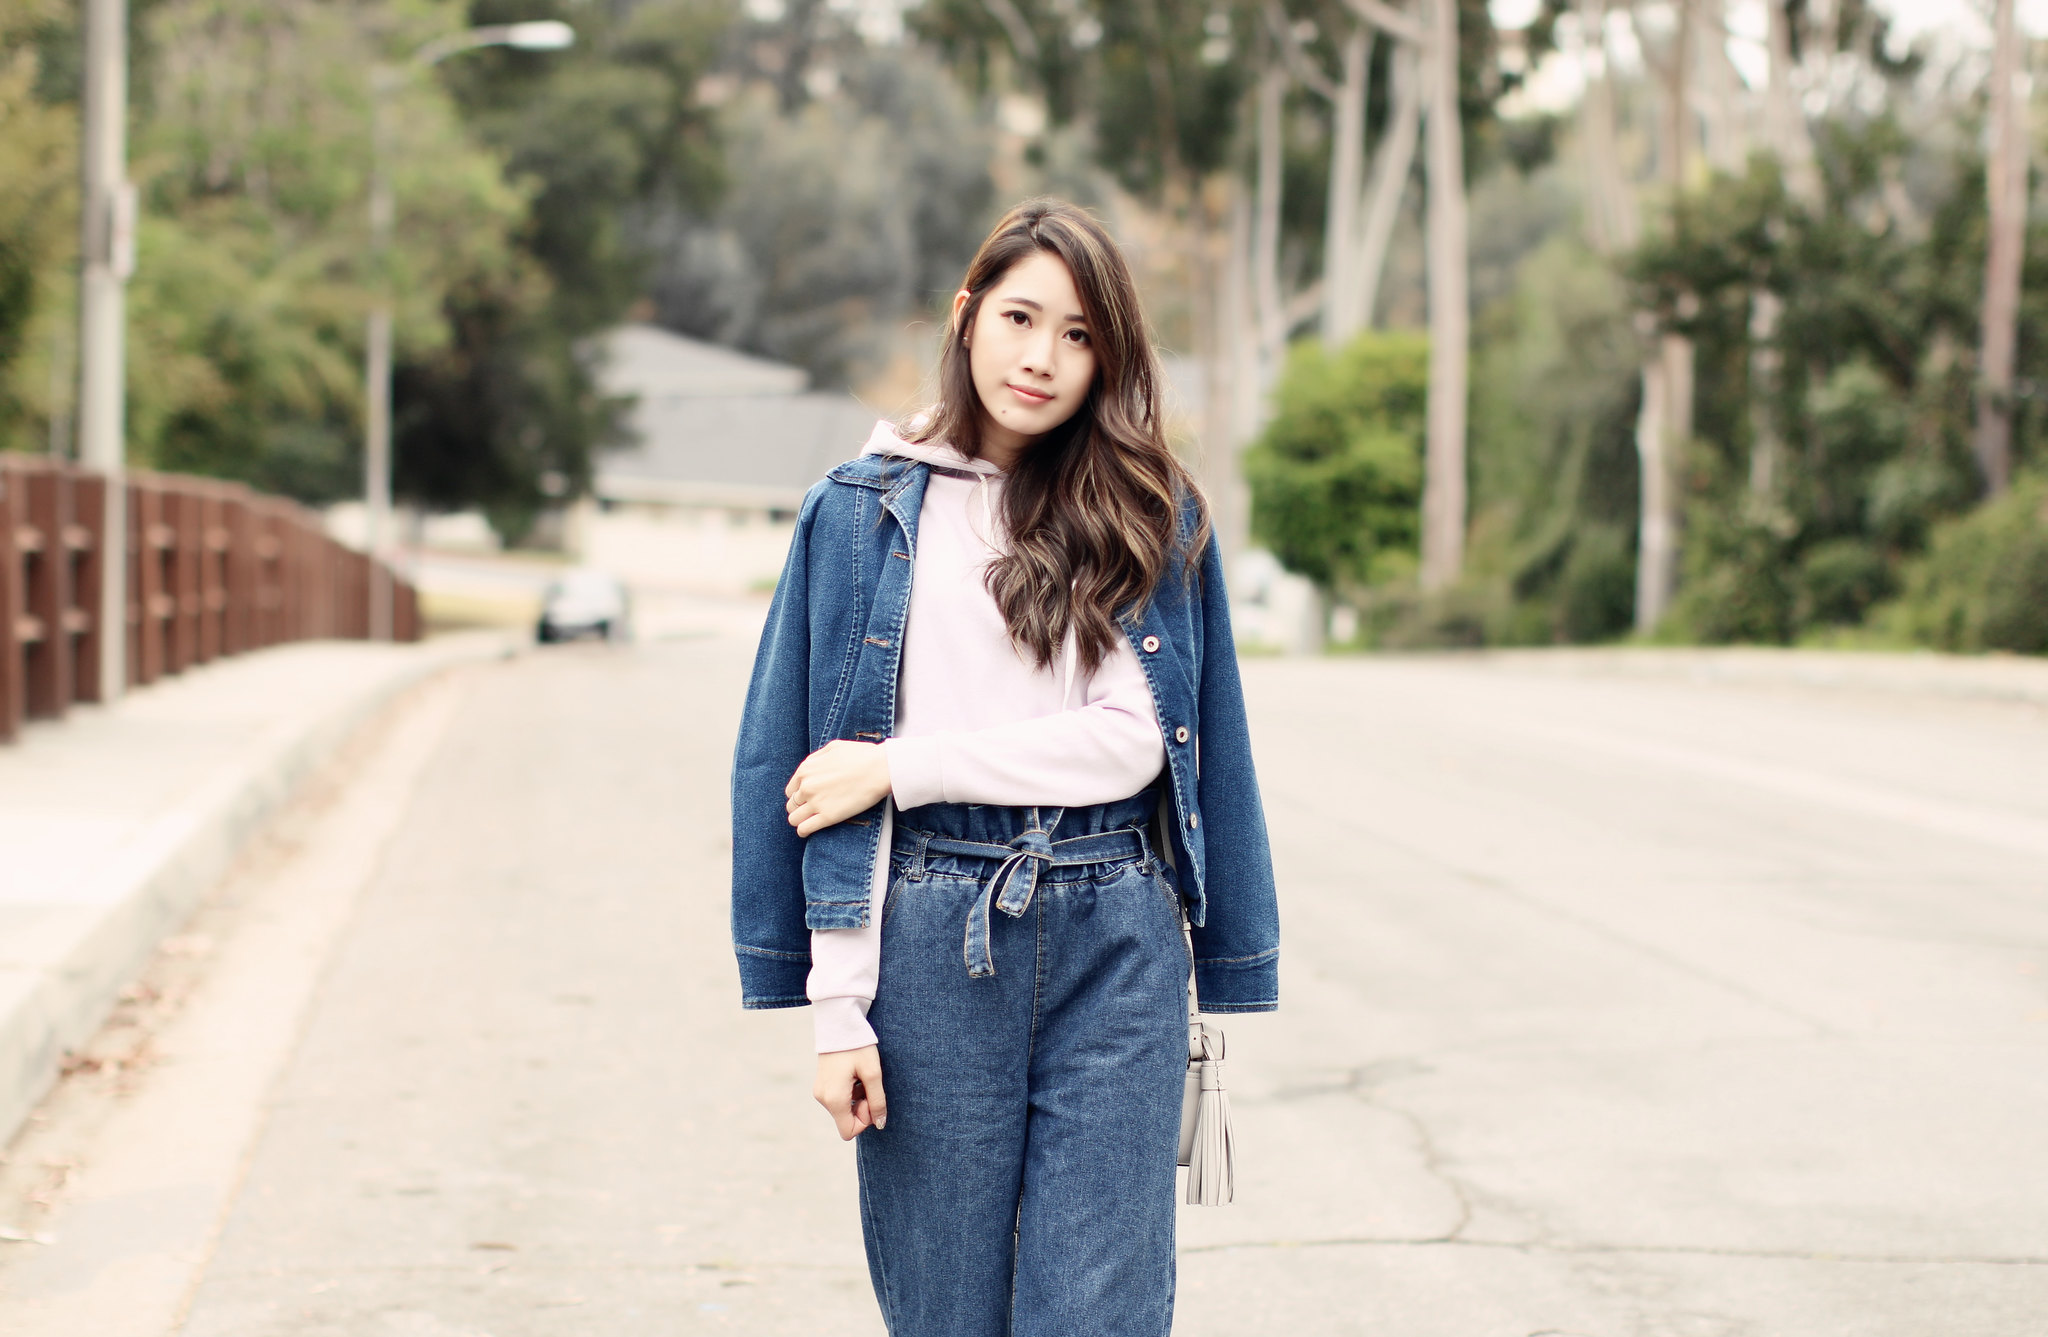 5088-ootd-fashion-style-outfitoftheday-wiwt-streetstyle-zara-f21xme-denim-thrifted-guess-koreanfashion-lookbook-elizabeeetht-clothestoyouuu